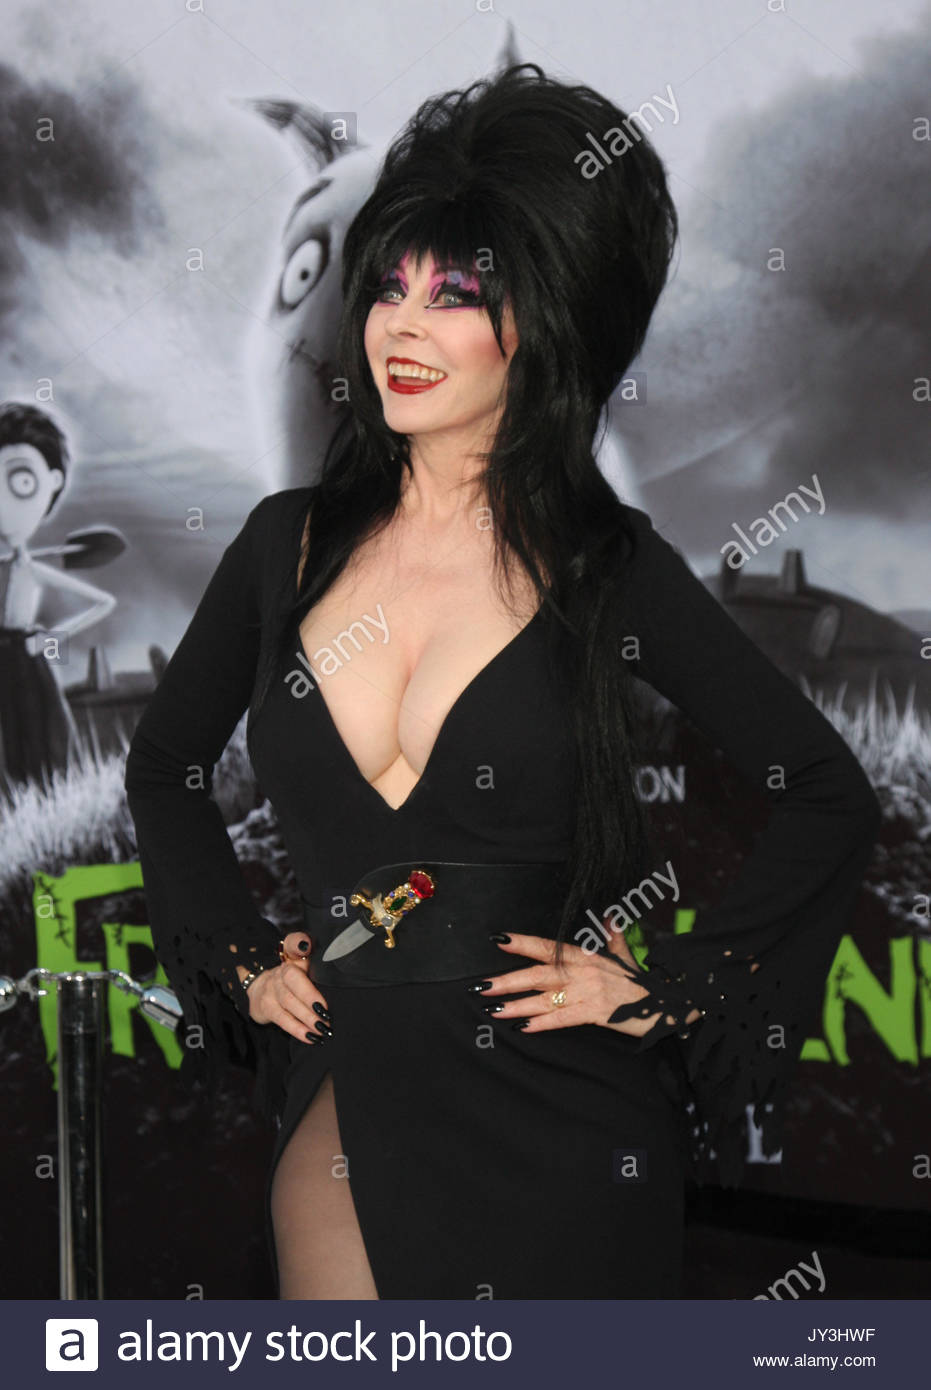 Cassandra Peterson Elvira Stock Photos & Cassandra ...